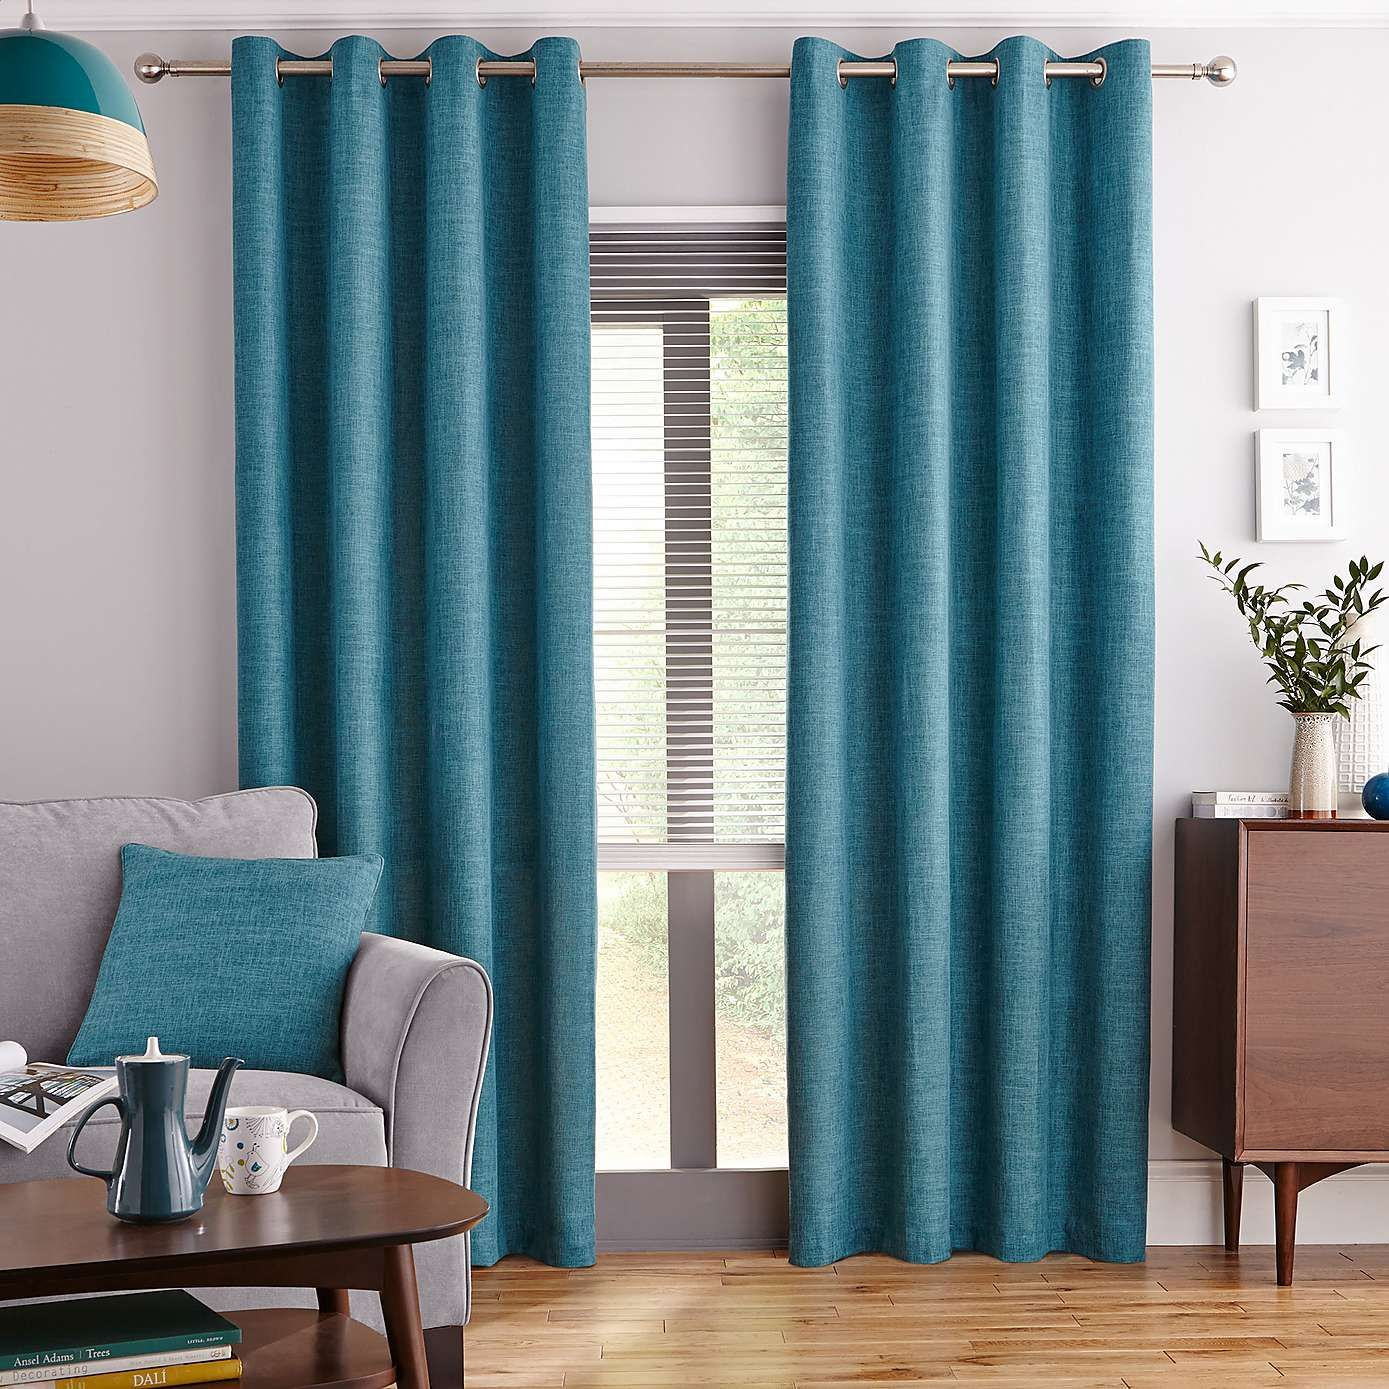 Teal Vermont Lined Eyelet Curtains  Dunelm  Kitchendining Fascinating Teal Living Room Curtains 2018